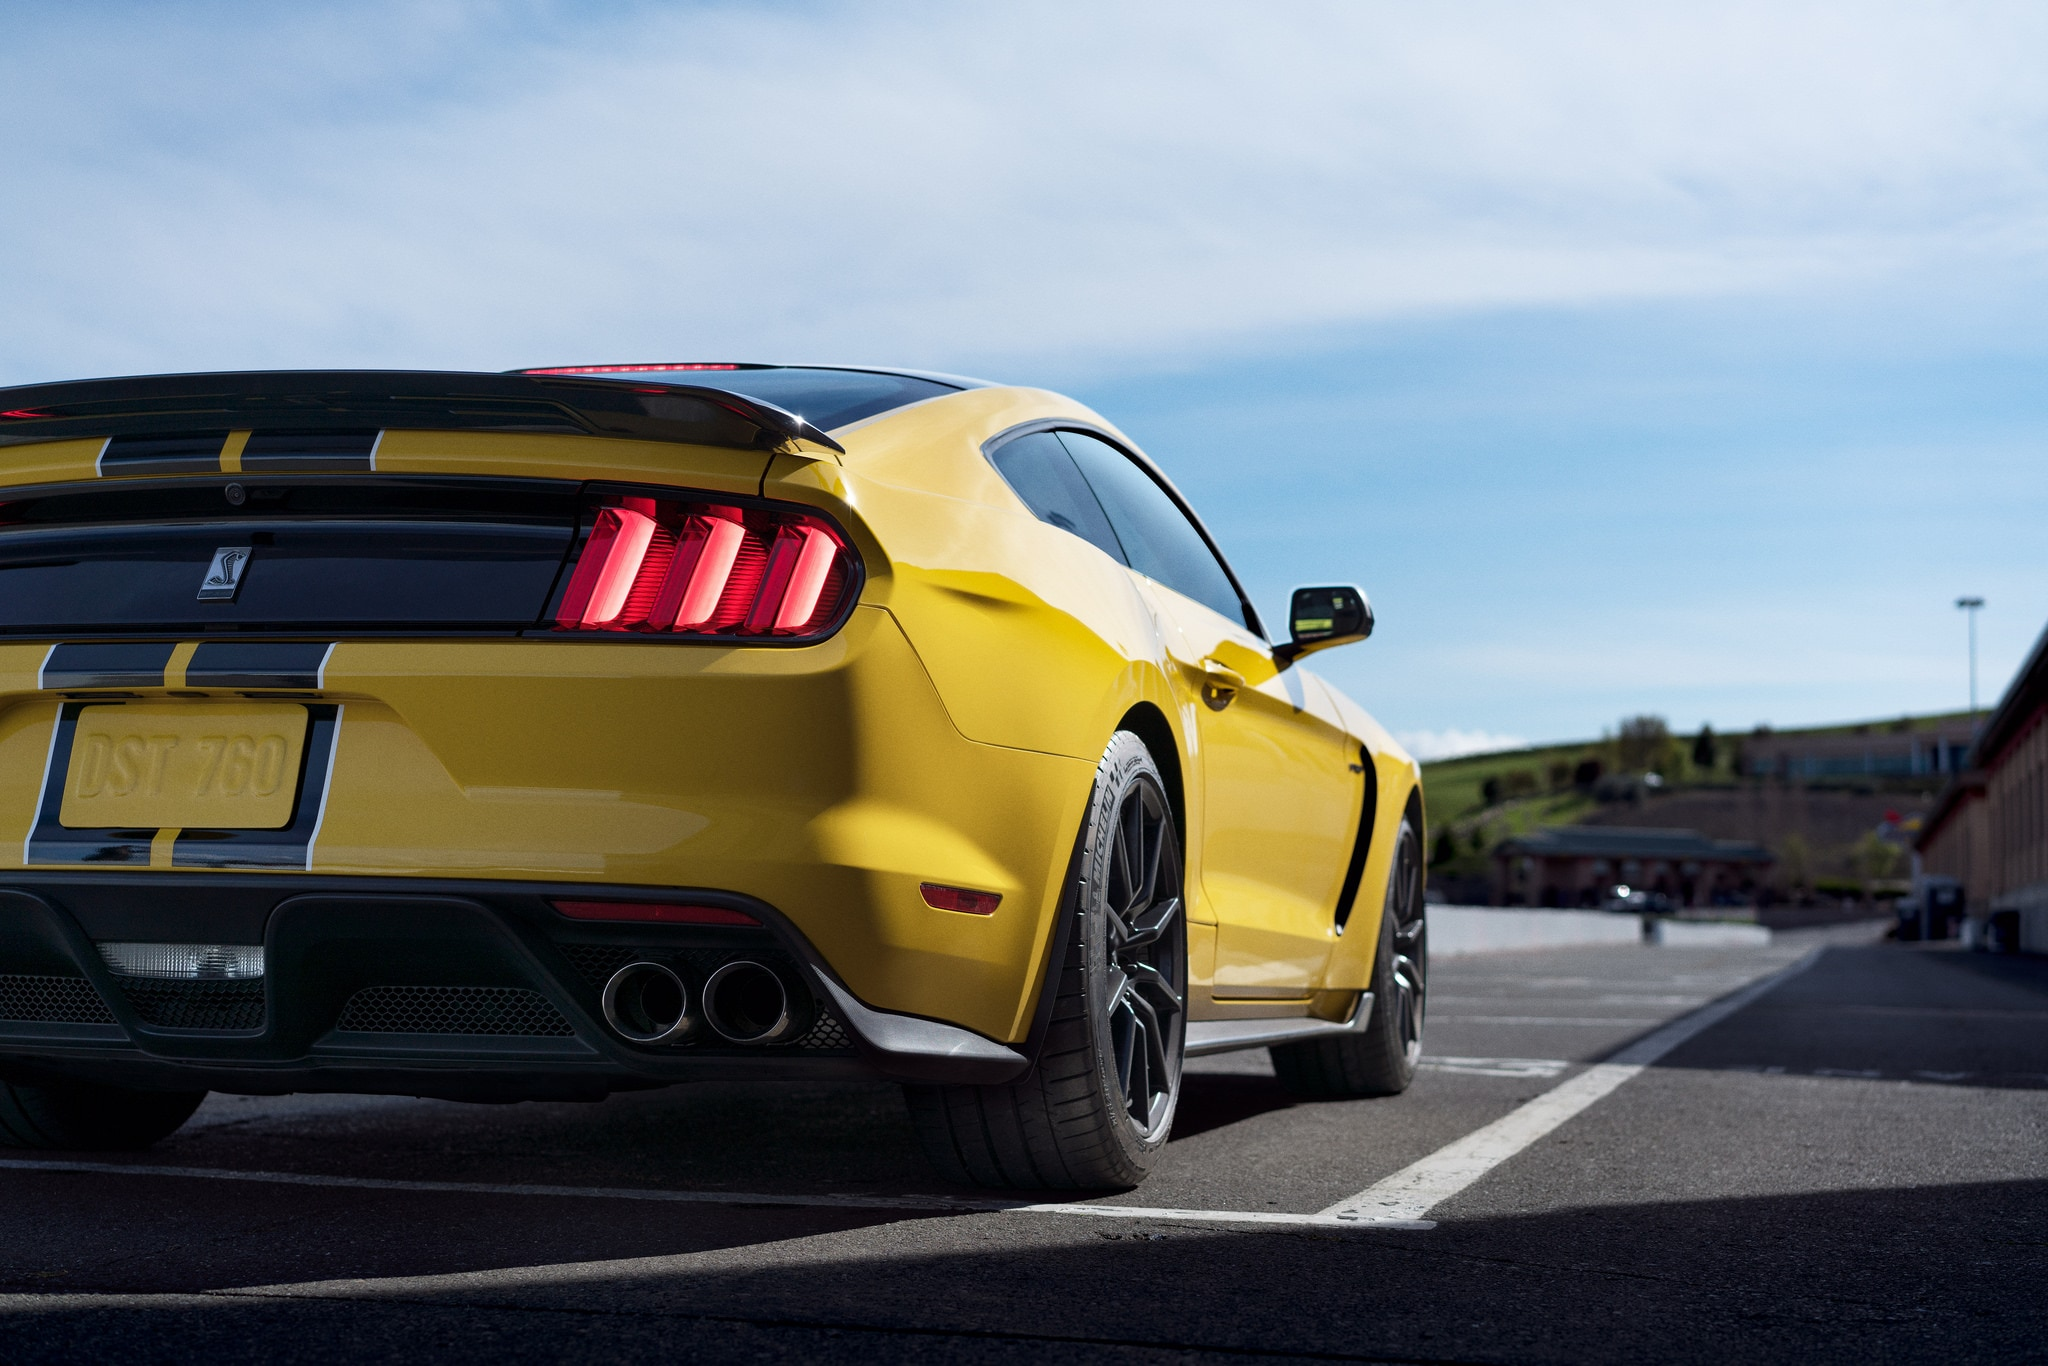 Prepare your Ford Mustang for summer with these helpful tips from McMullen Ford's Service Department